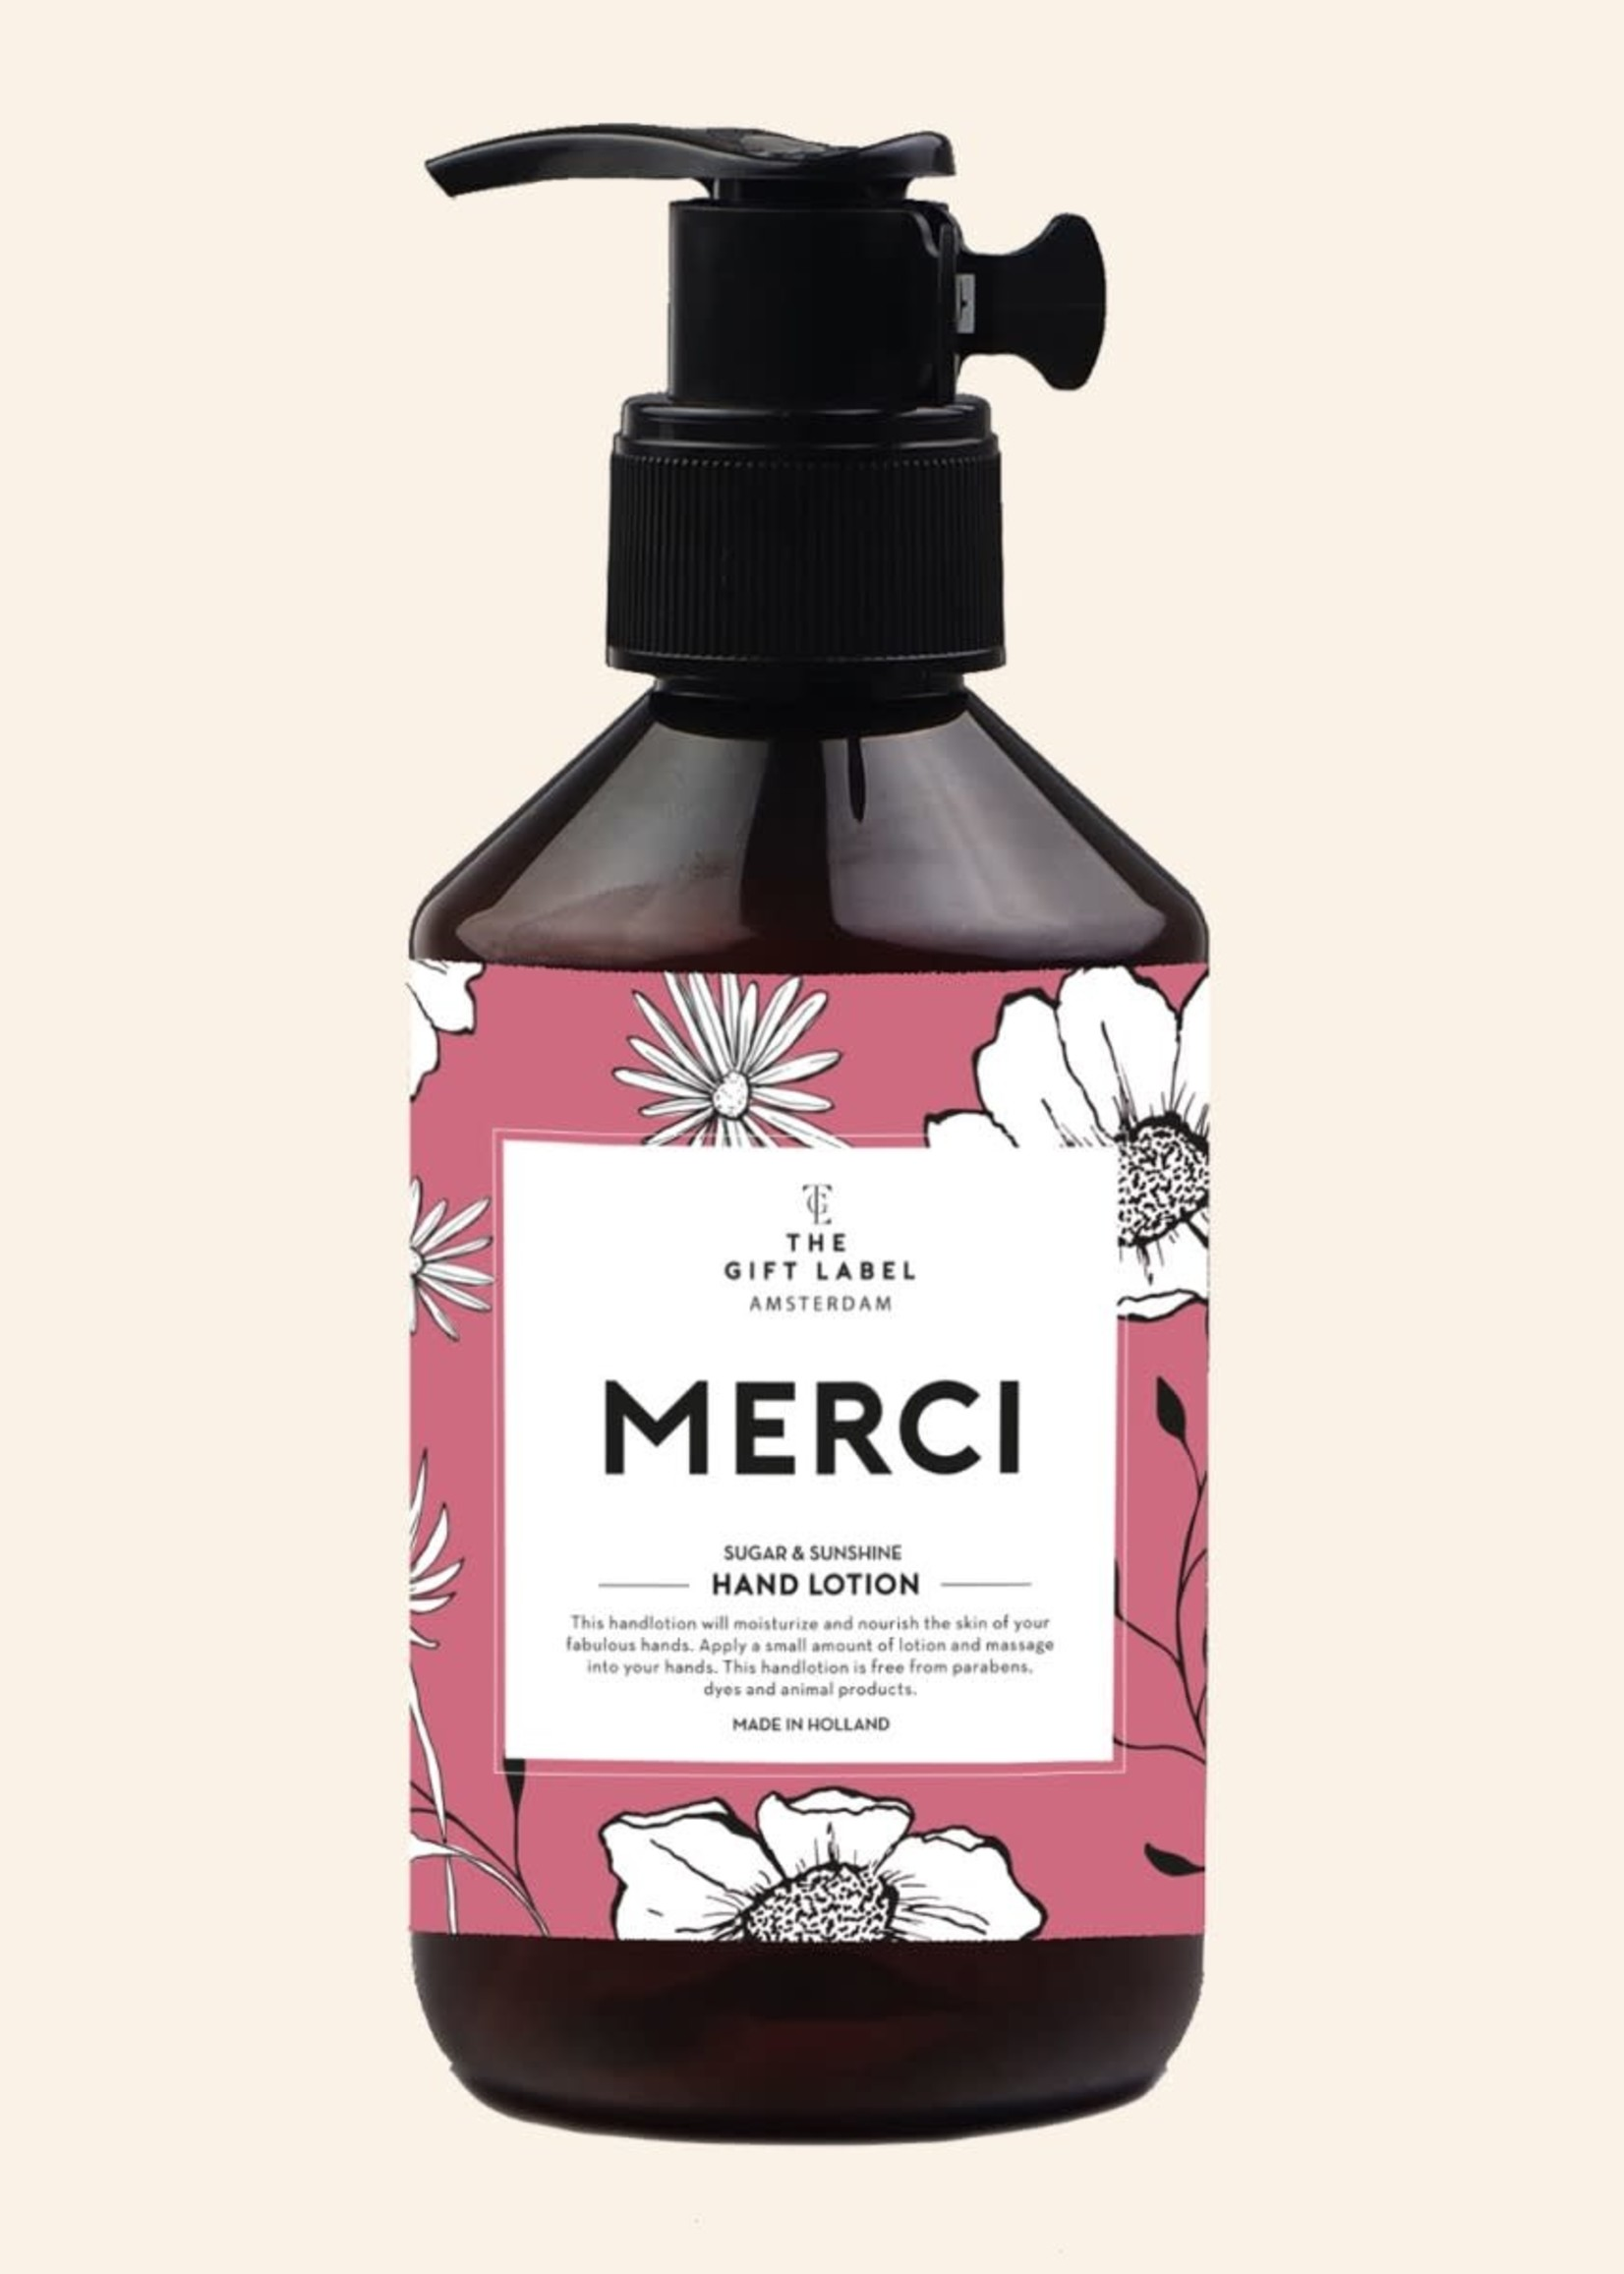 The Gift Label Hand Lotion Merci